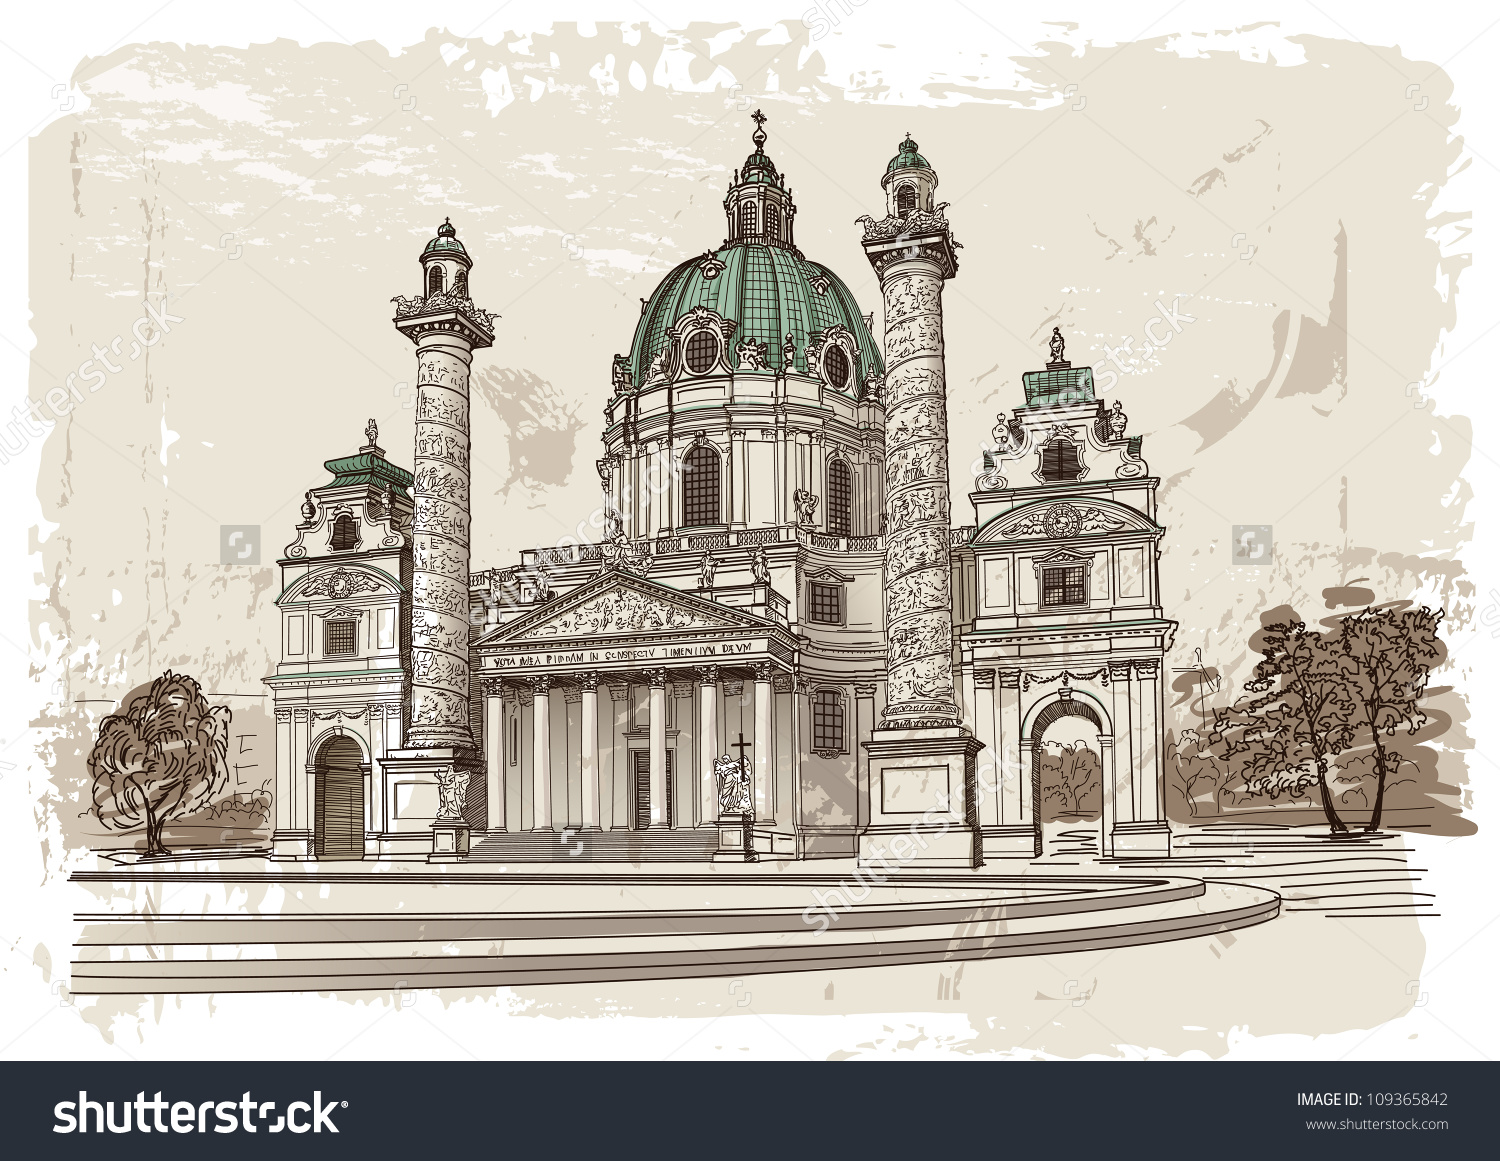 Vector Drawing Of Karlskirche In Vienna, Austria.